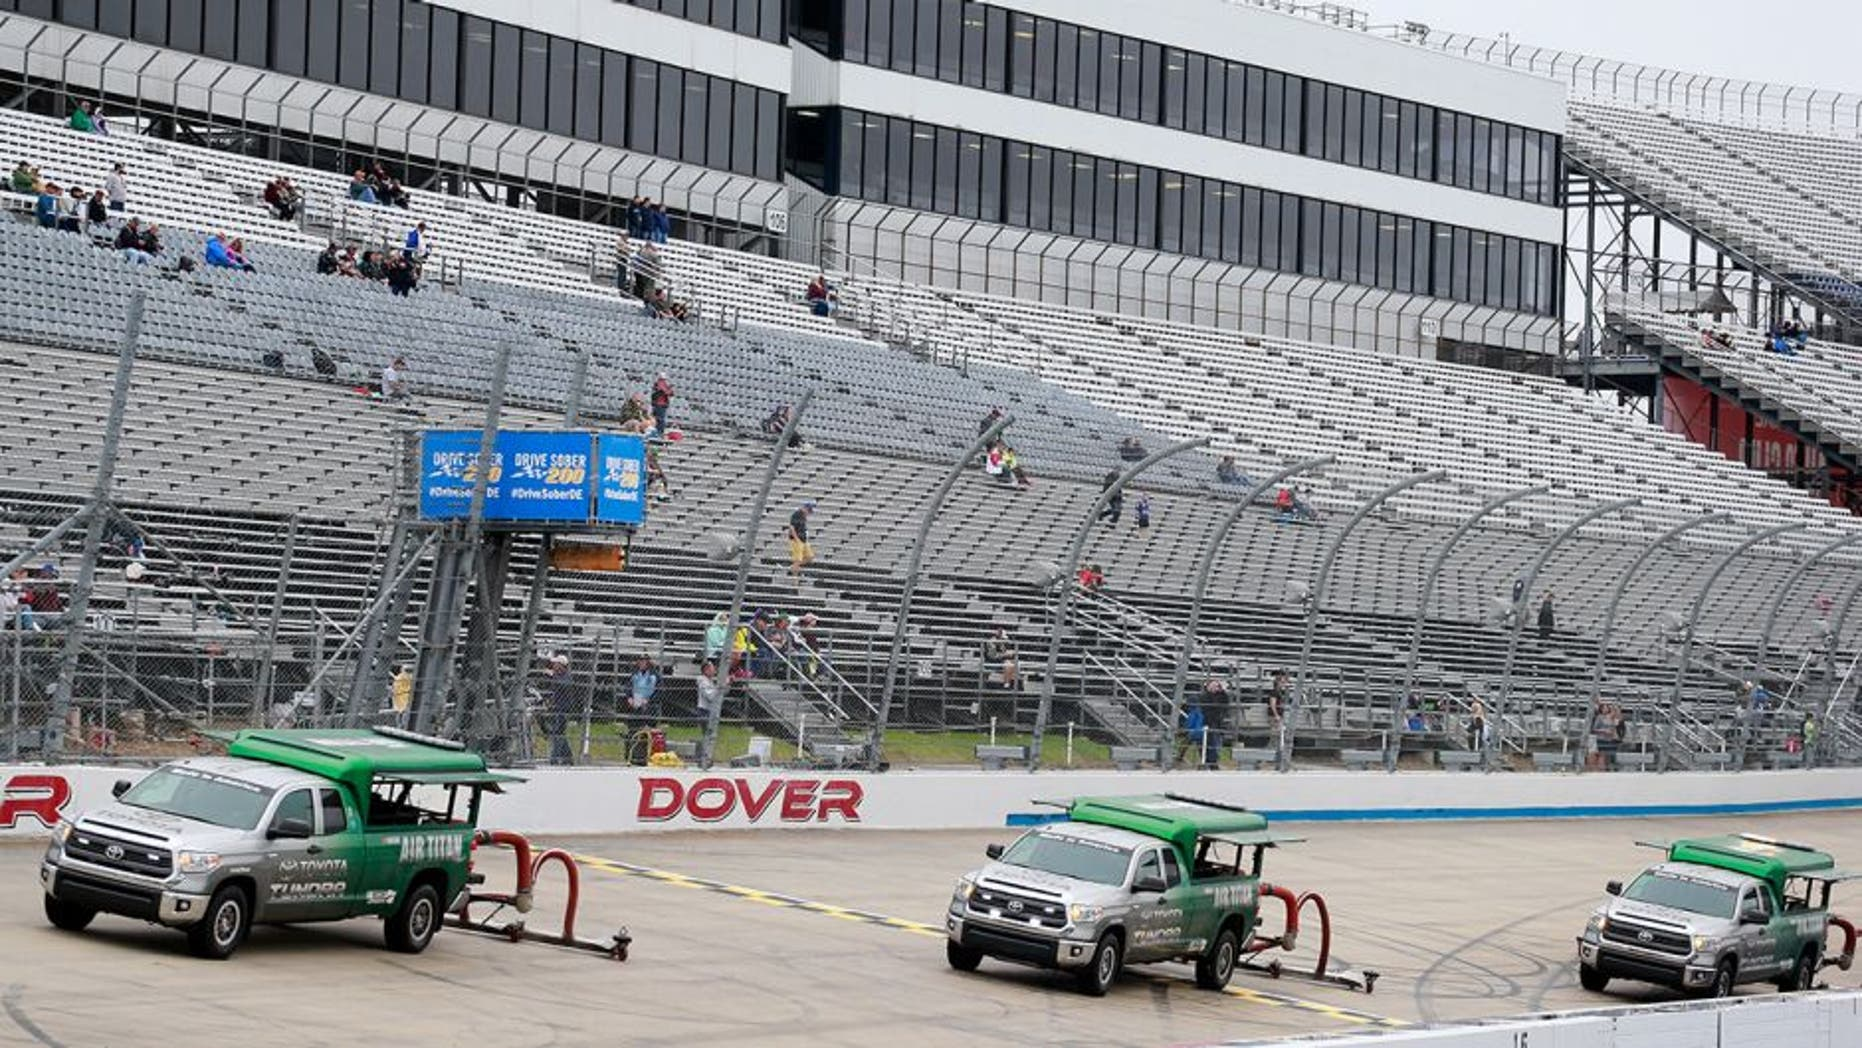 DOVER, DE - OCTOBER 01: Air Titan 2.0 trucks work to dry the track after qualifying for the NASCAR XFINITY Series Drive Sober 200 at Dover International Speedway on October 1, 2016 in Dover, Delaware. (Photo by Matt Sullivan/Getty Images)